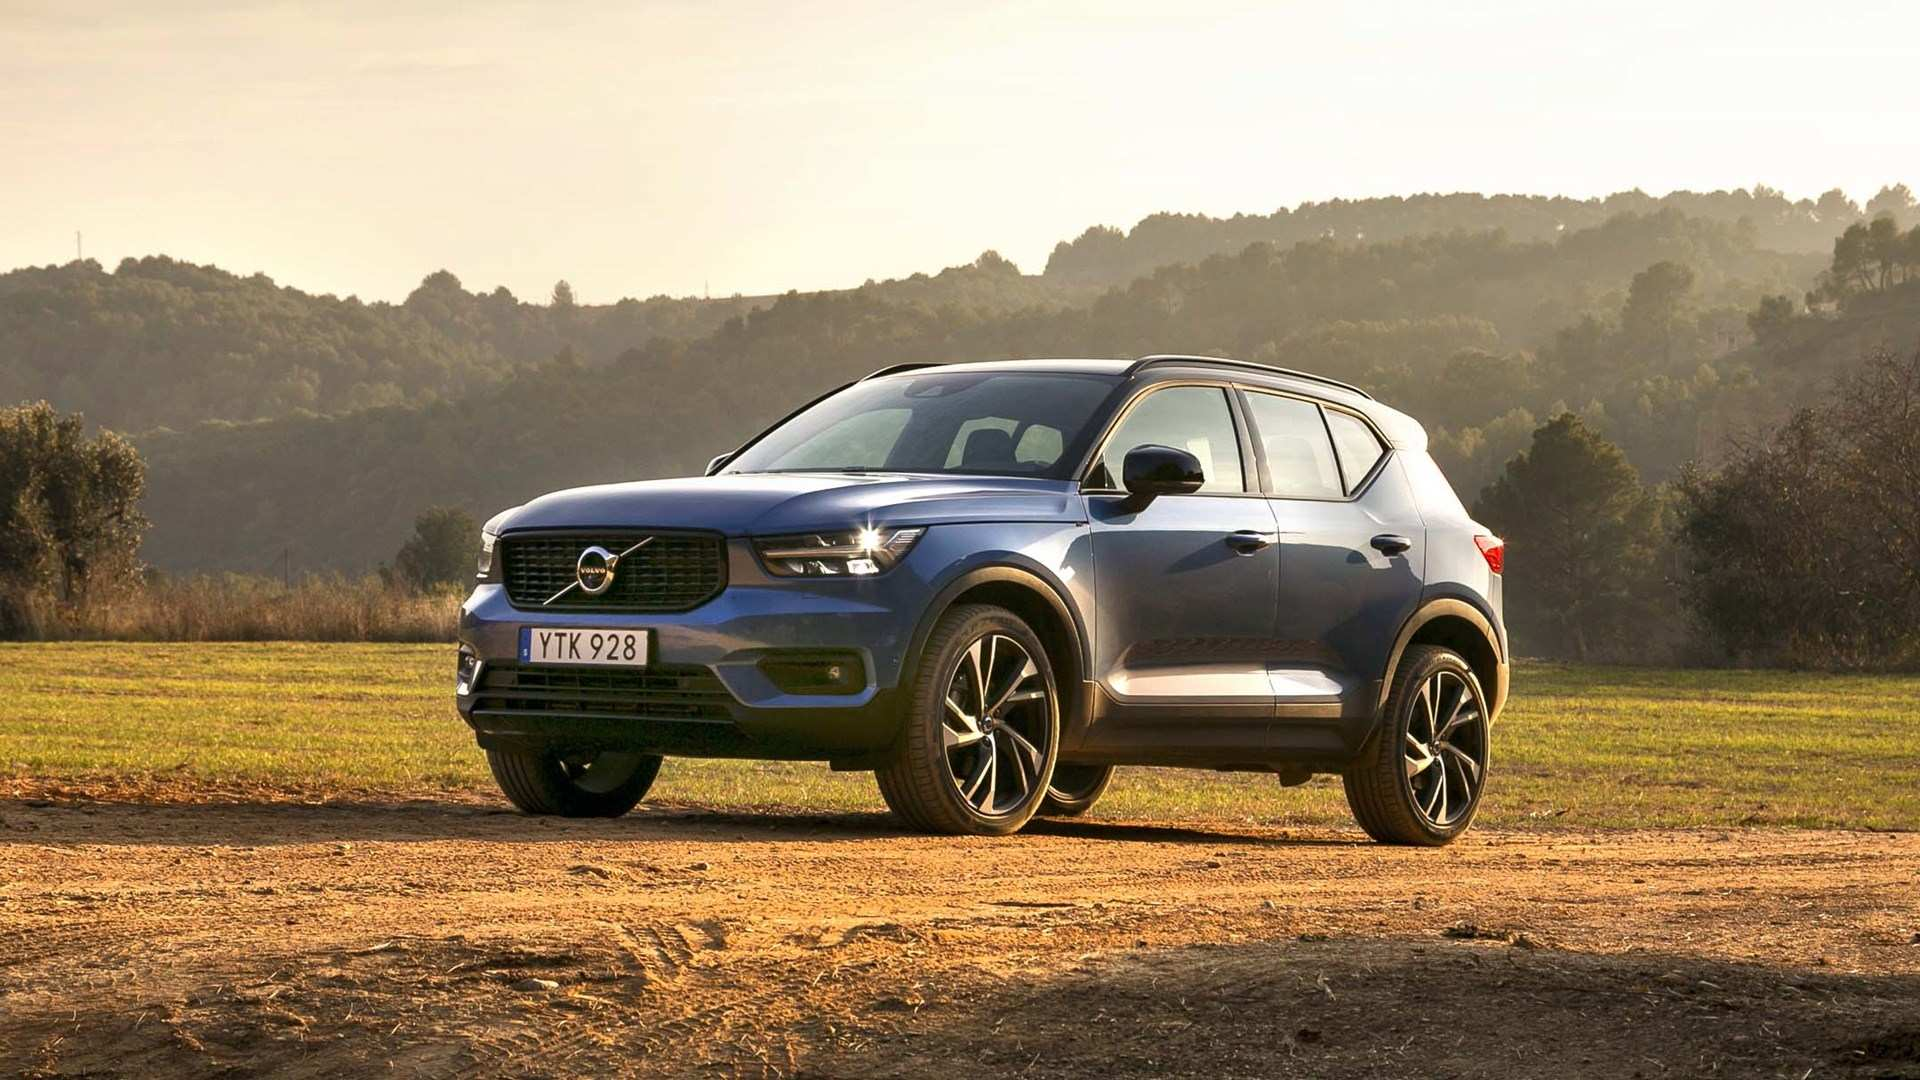 81 Best Review The Volvo Suv 2019 First Drive Pricing with The Volvo Suv 2019 First Drive